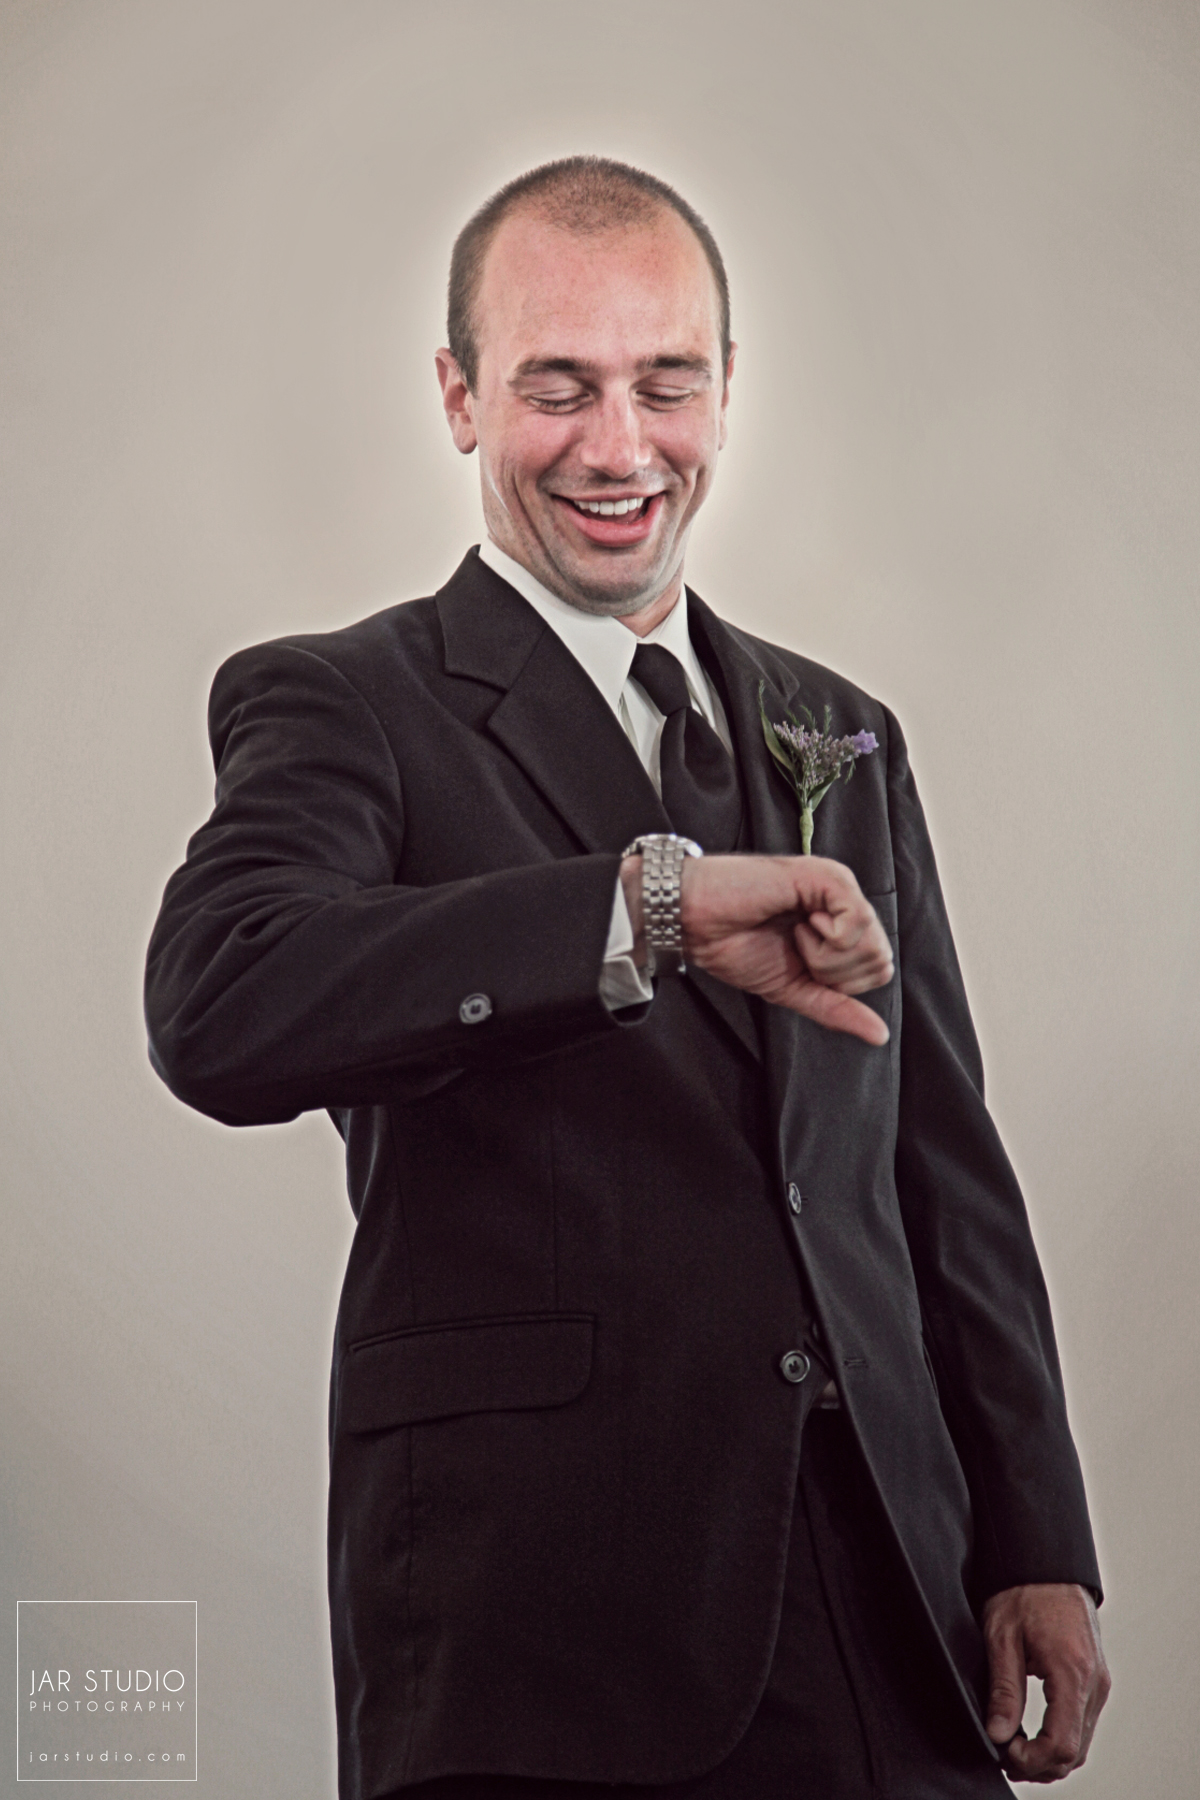 08-groom-portrait-black-tie-jarstudio-photography.JPG